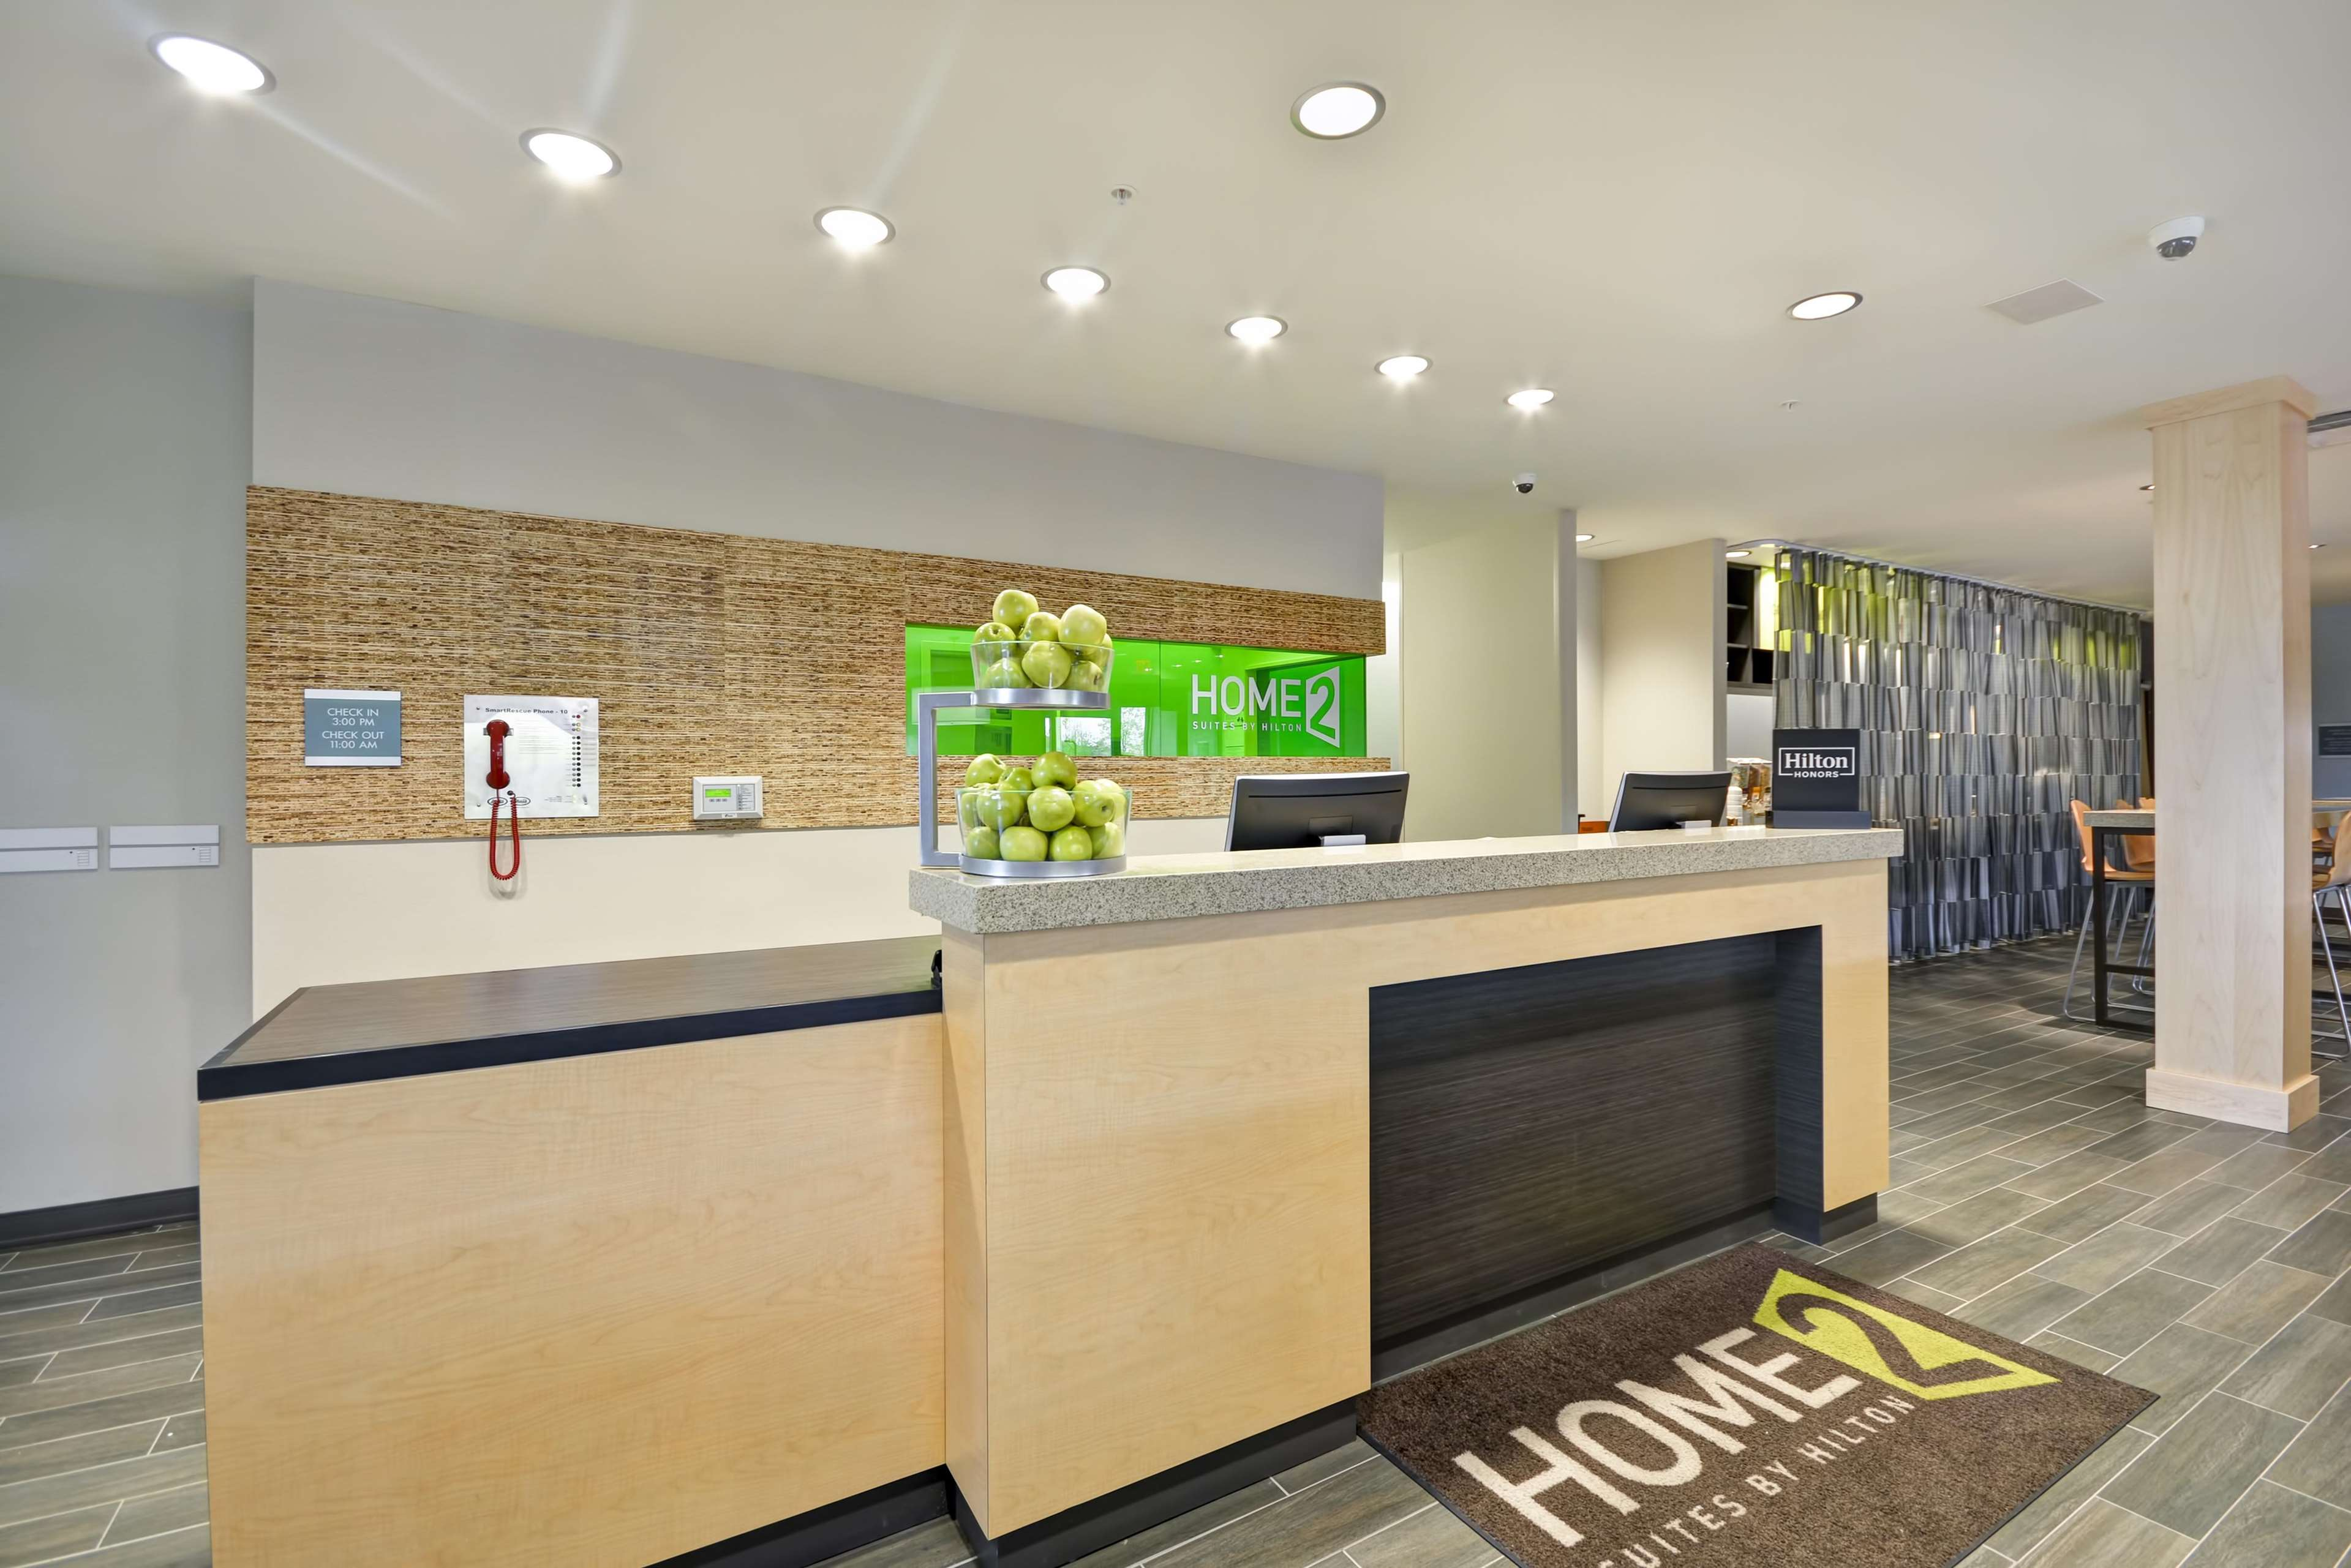 Home2 Suites by Hilton Oswego image 23